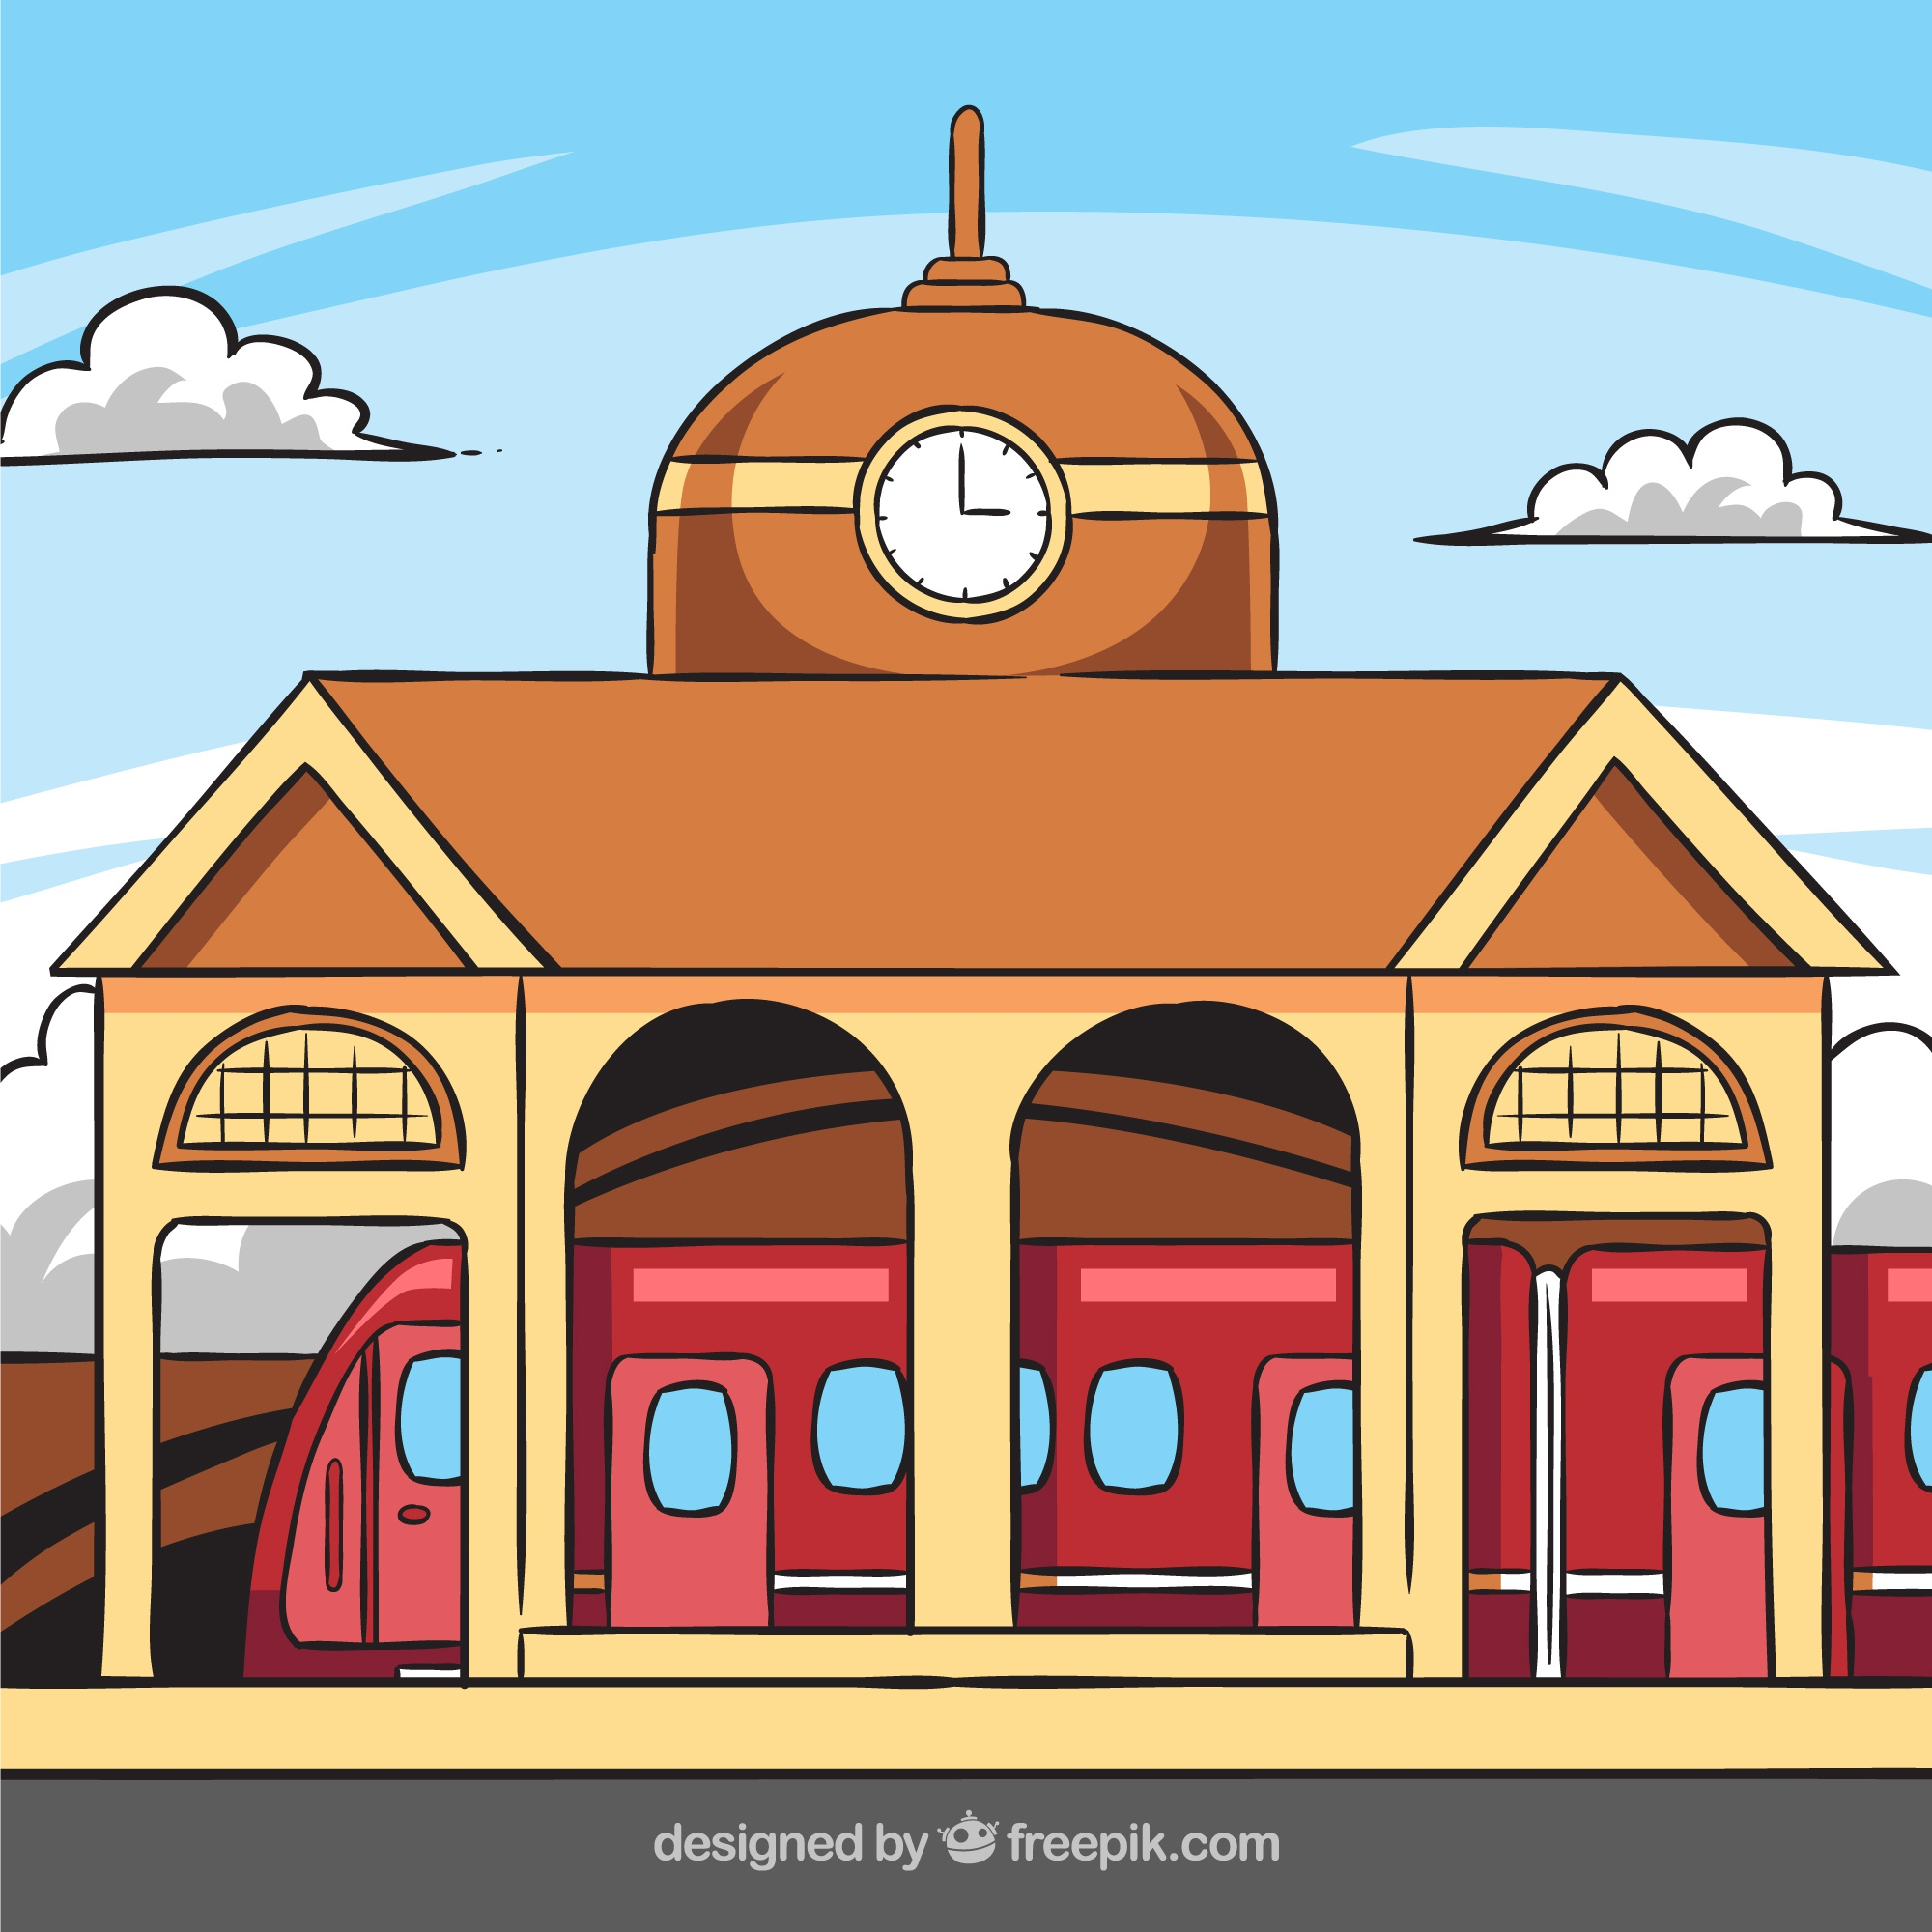 Train station building with clock